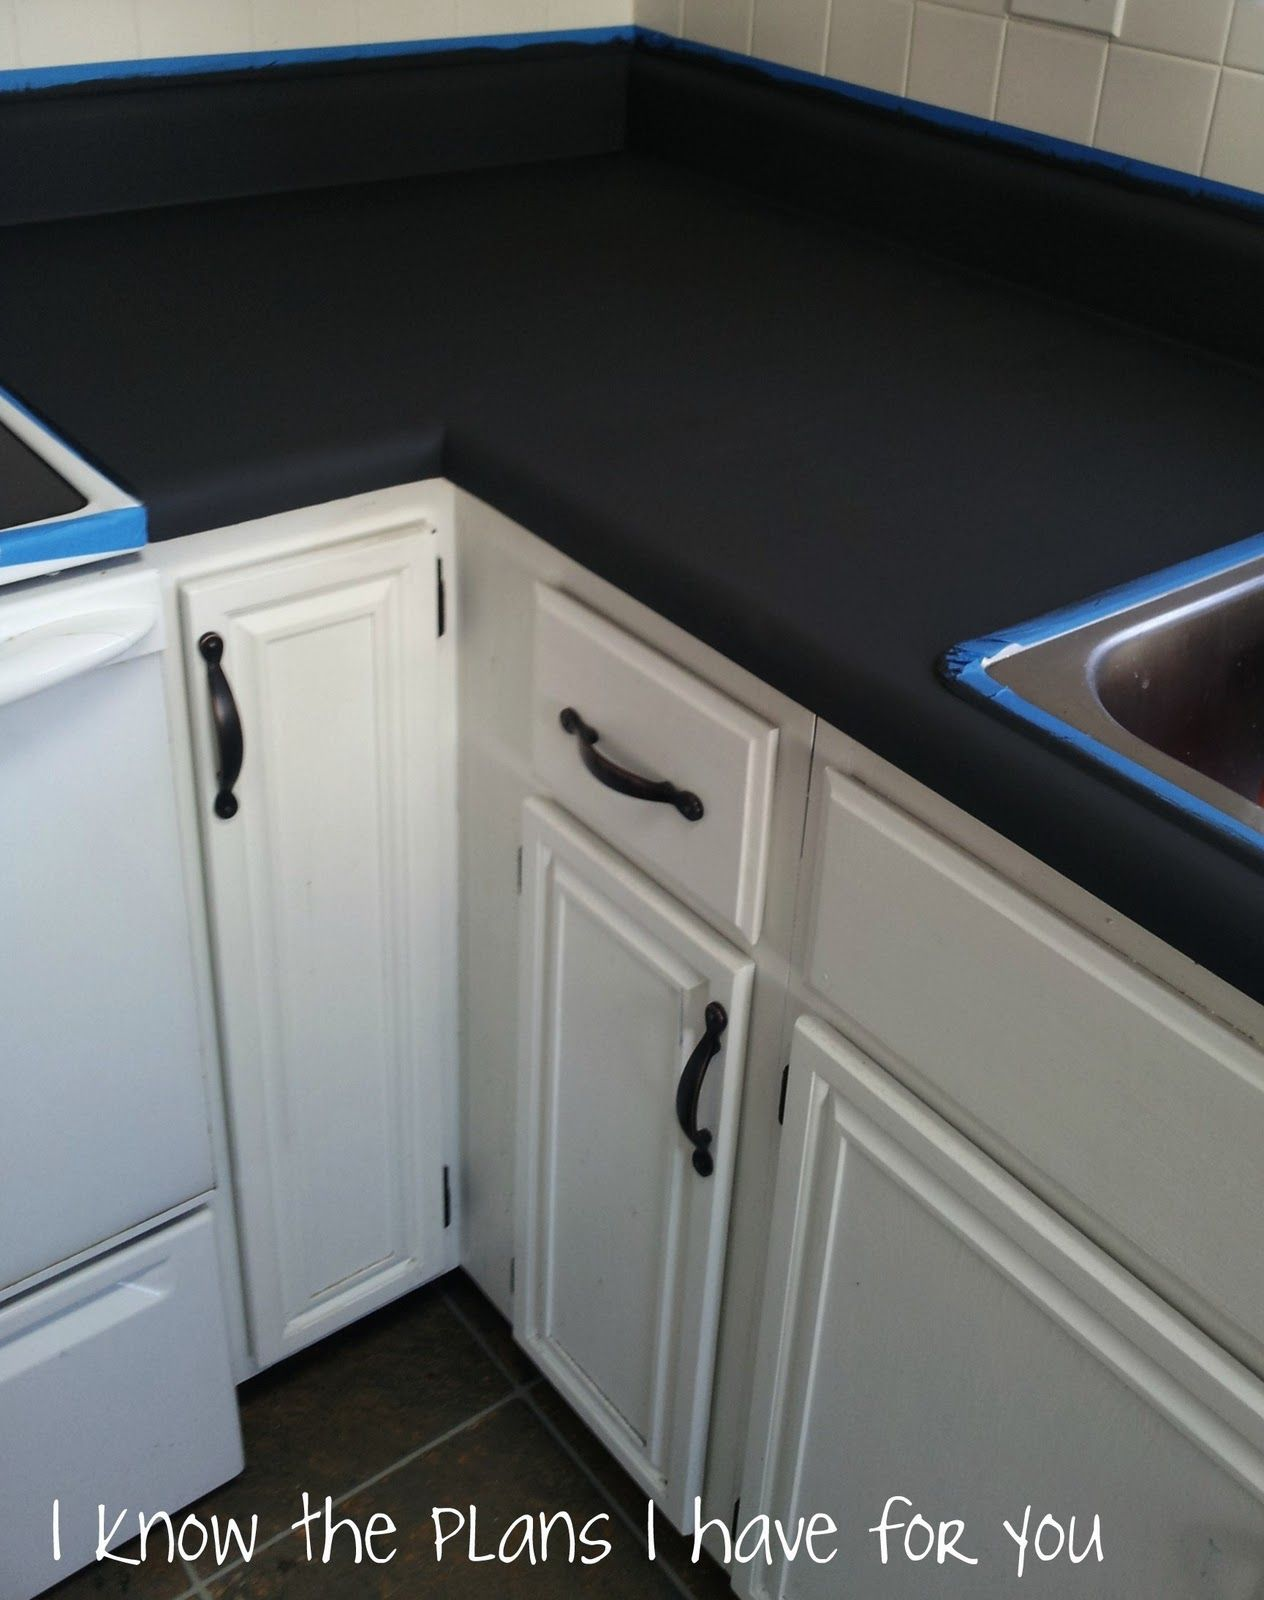 Diy How To Paint Kitchen Countertops Lots Of Tips On What To Do And What Not To Do When